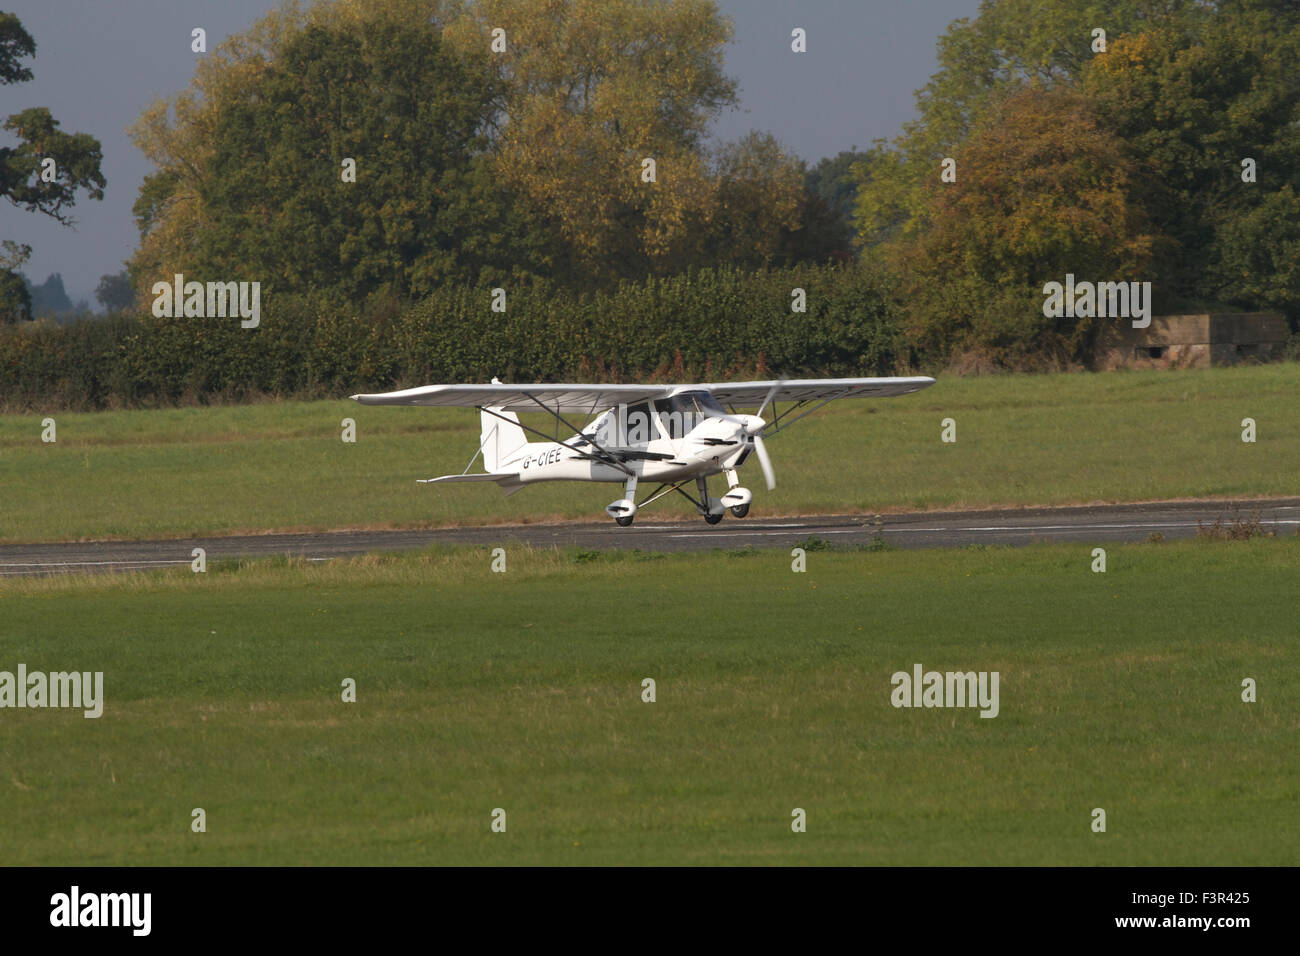 single engined light aircraft landing at Wolverhampton Halfpenny Green Airport. UK - Stock Image